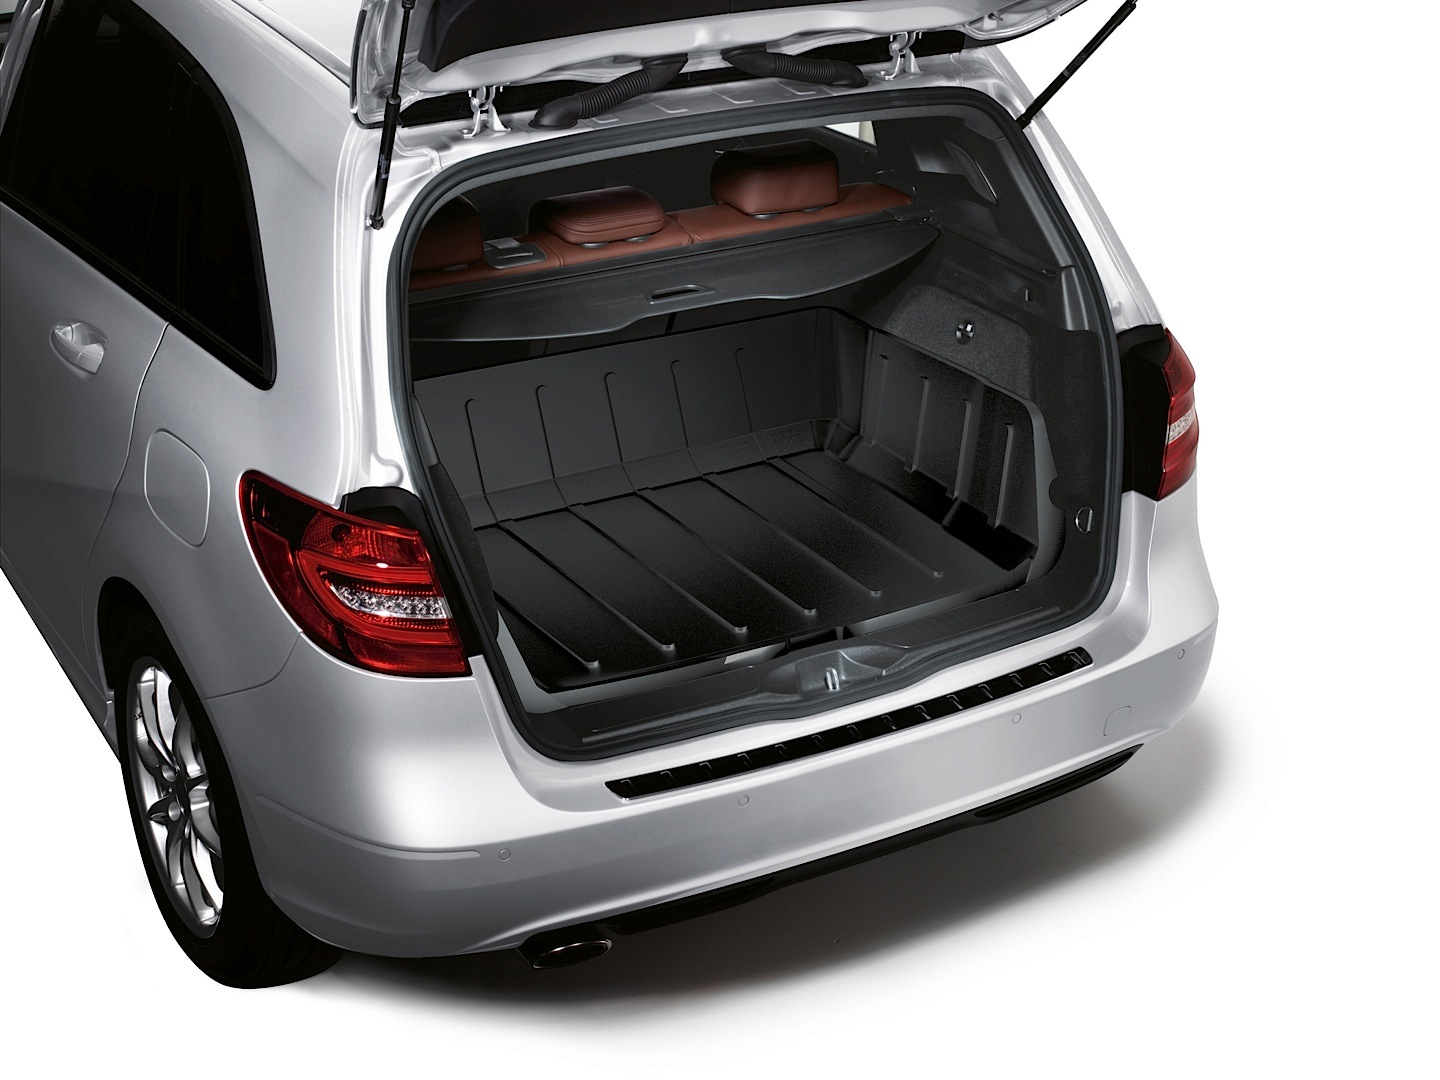 Mercedes benz launches 2013 winter accessories autoevolution for Mercedes benz usa accessories